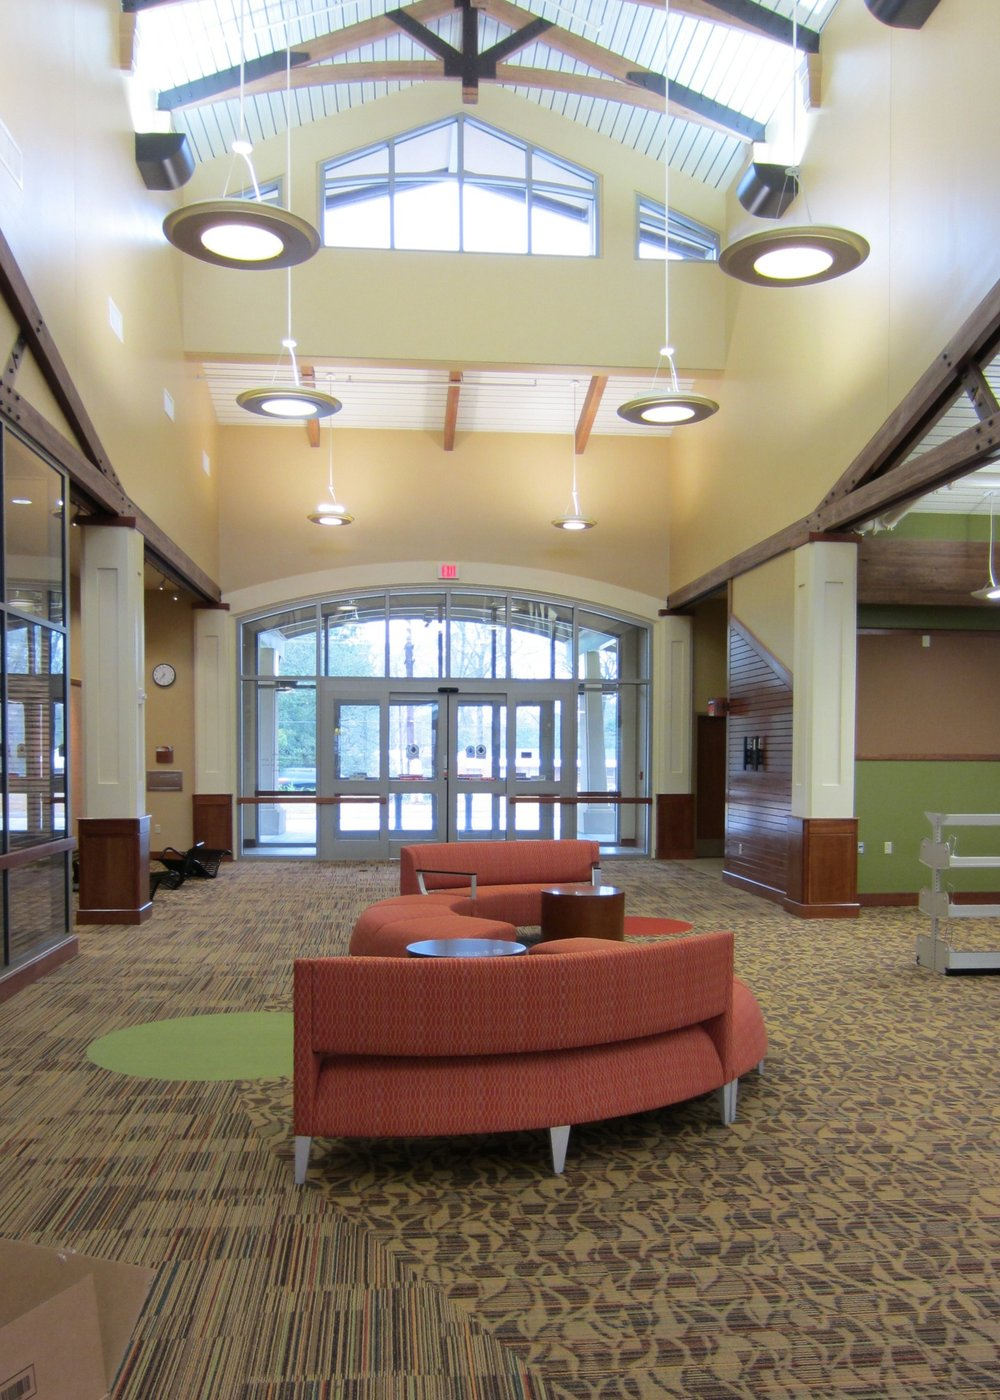 Fairwood Branch Library - Baton Rouge, LA